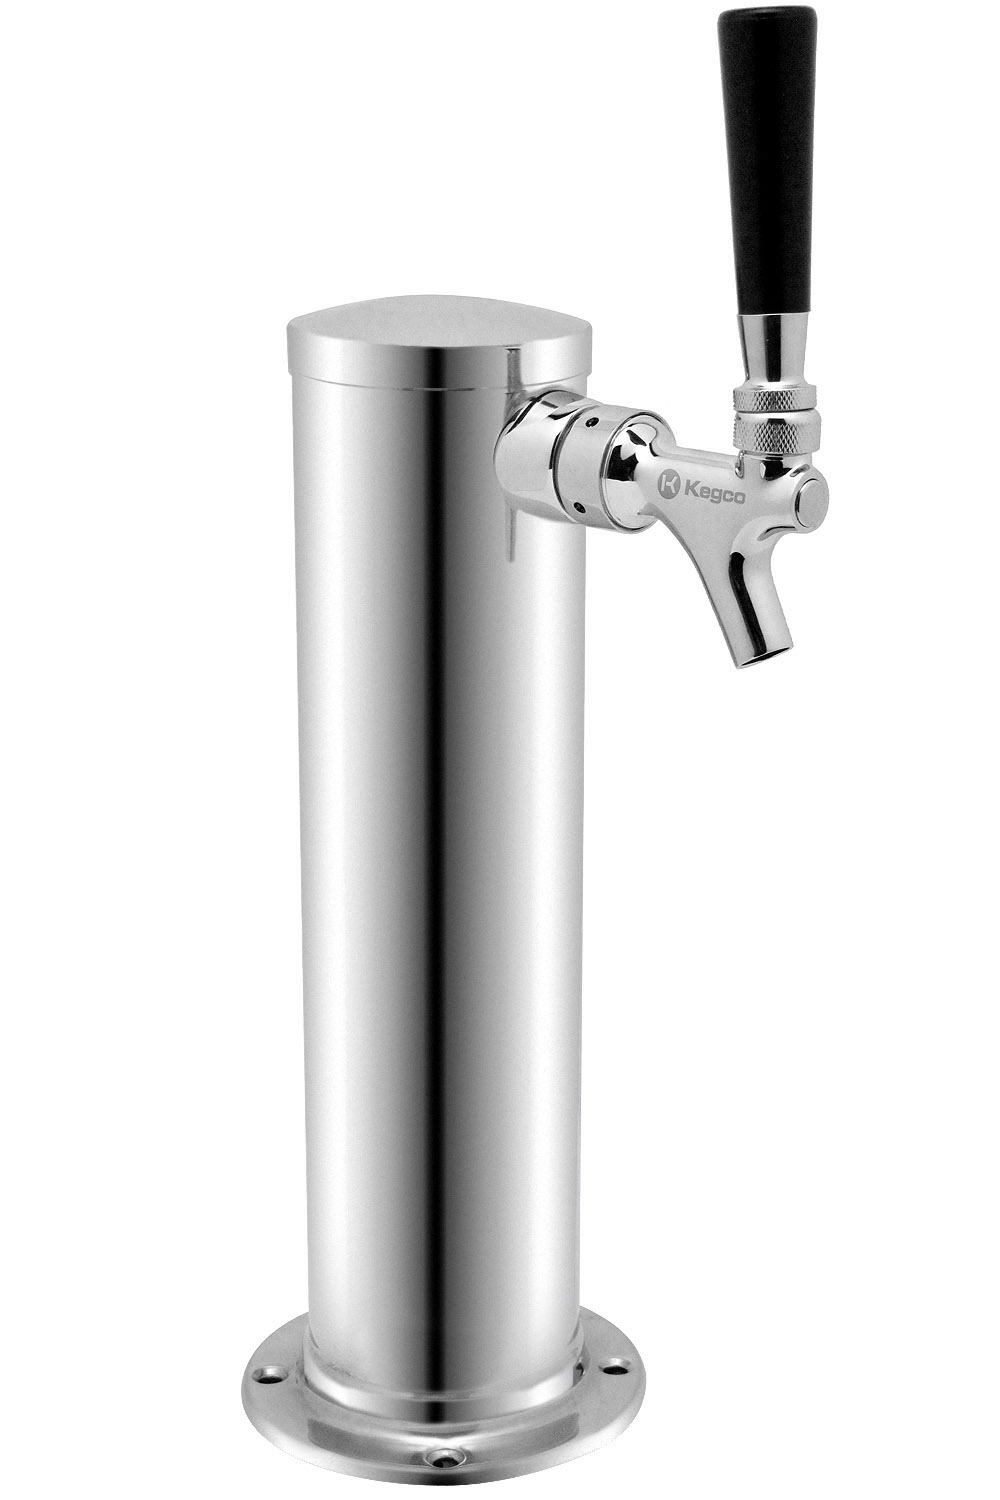 Stainless Steel Towers : Kegco d t ss polished stainless steel tap beer tower